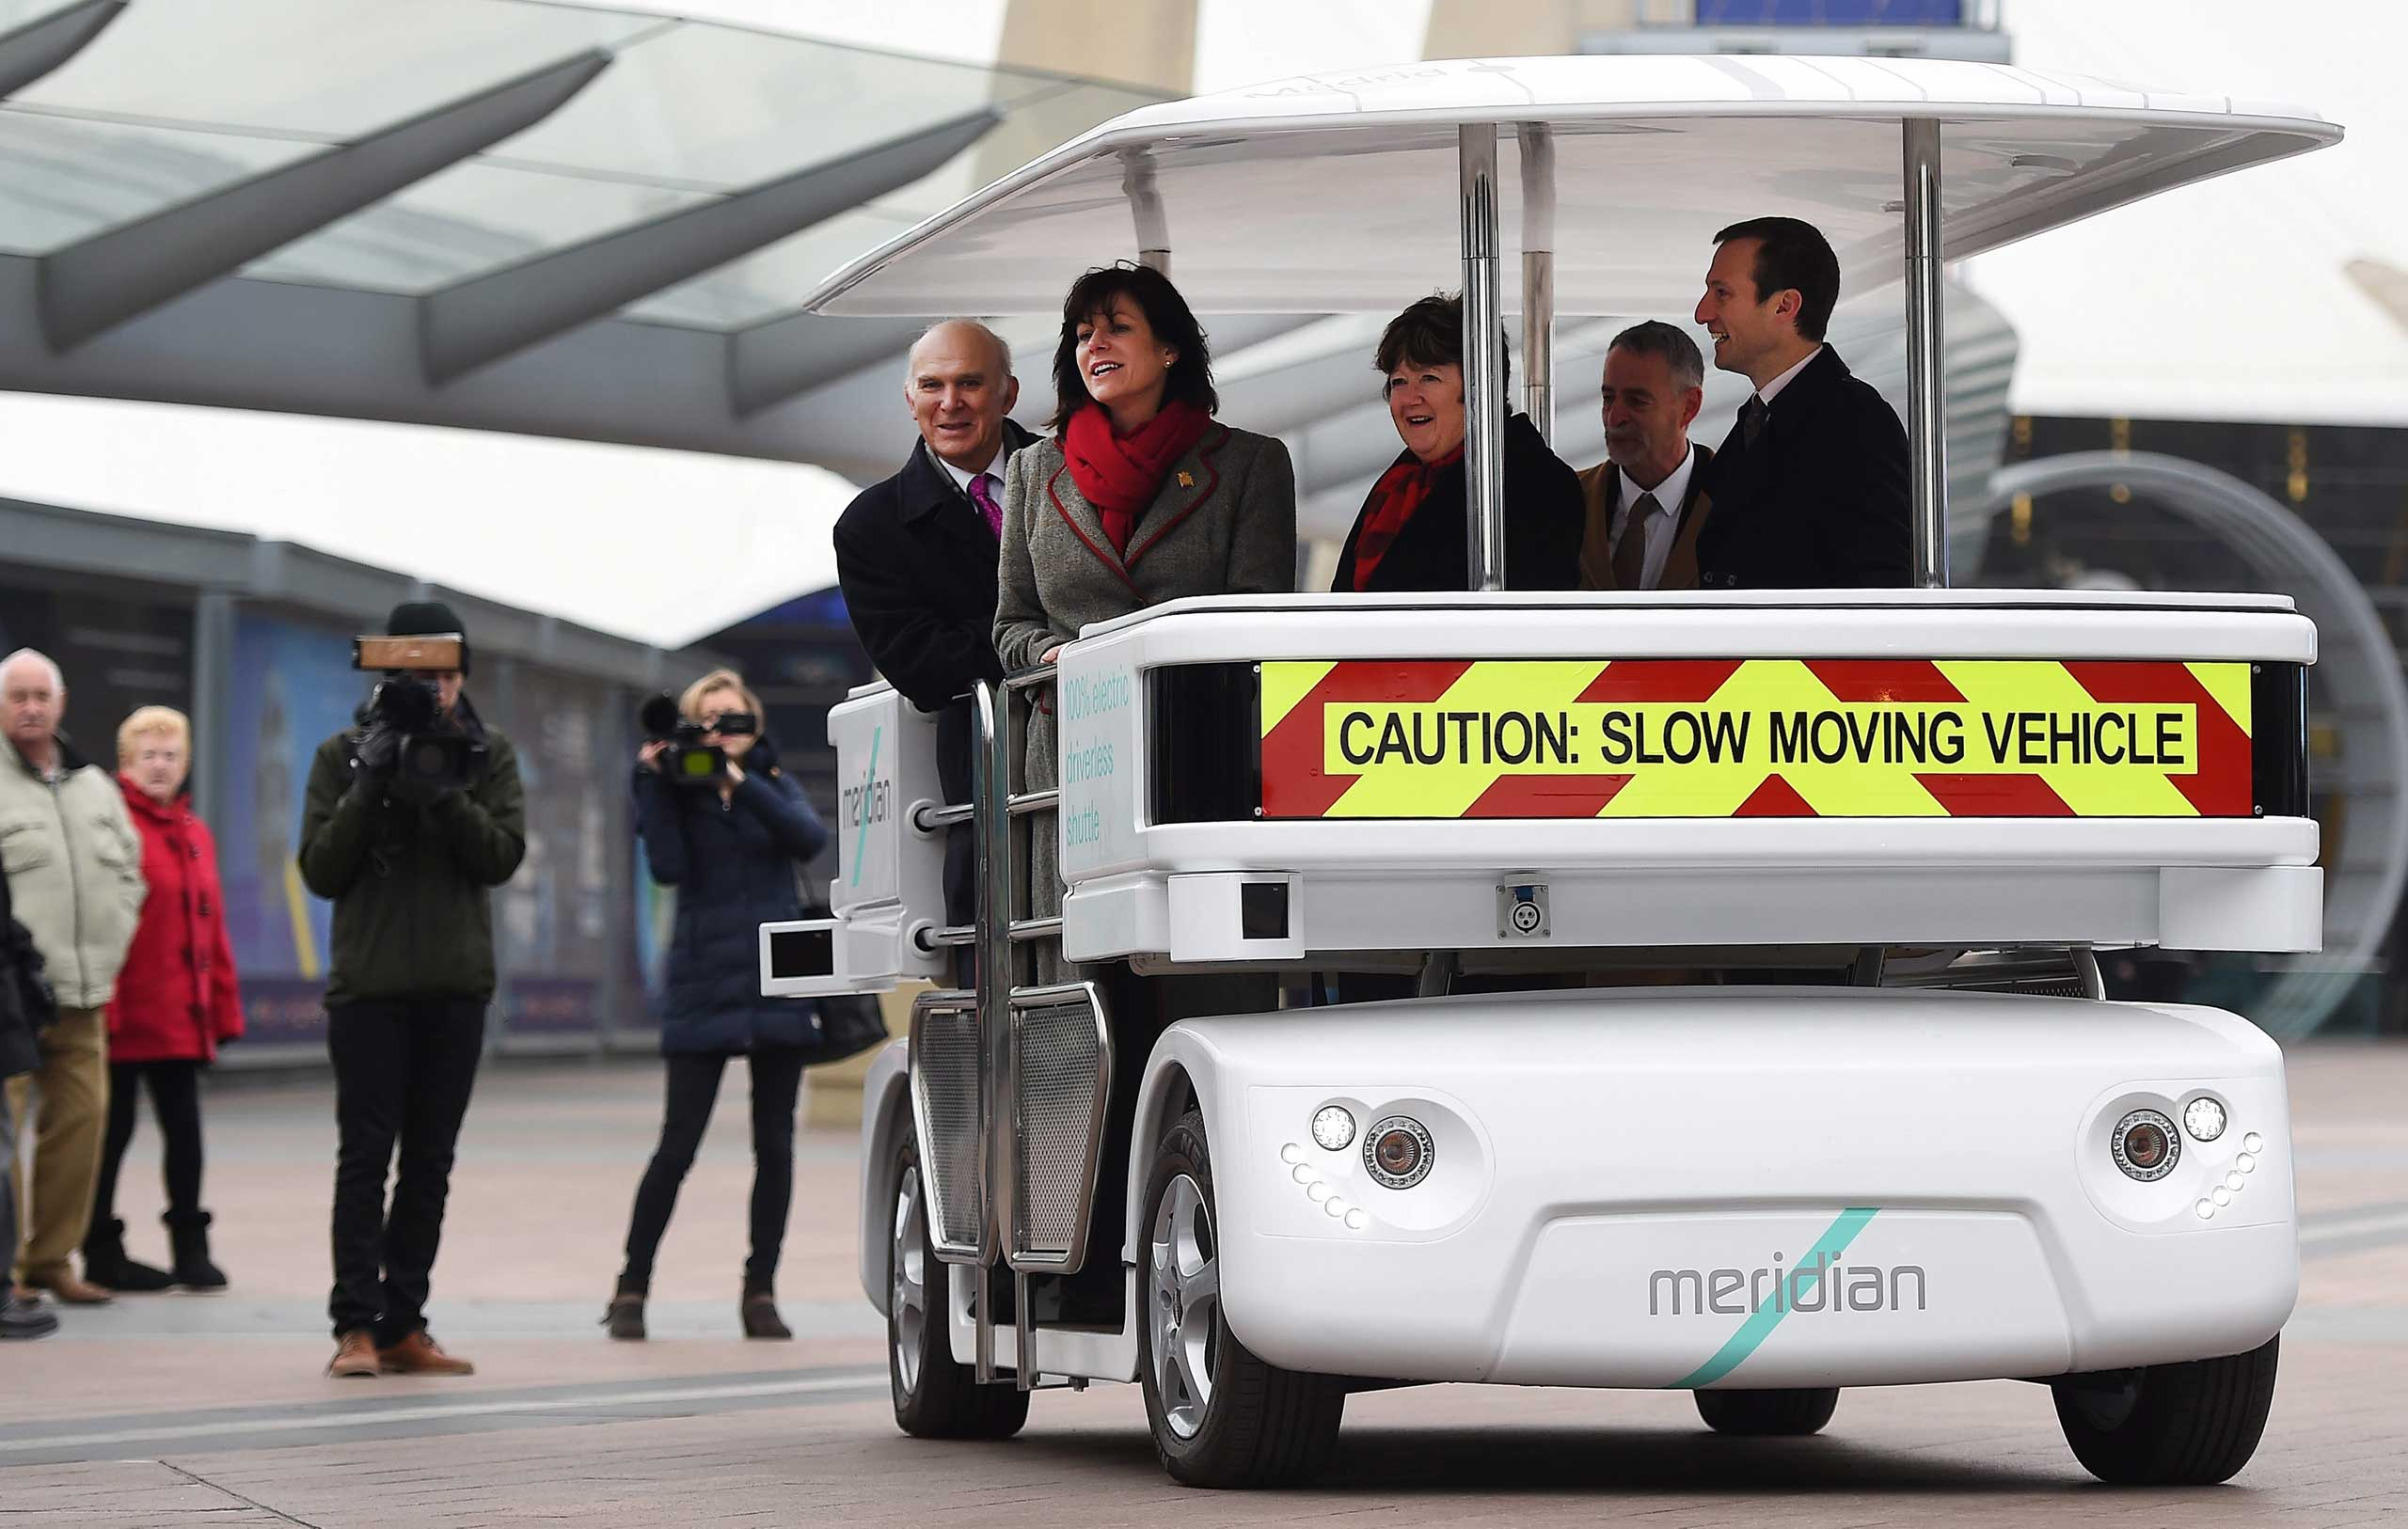 British Transport Minister Claire Perry and British Secretary of State for Business Innovation and Skills Vince Cable ride a driverless 'Meridian' vehicle in London, Feb. 11,2015.